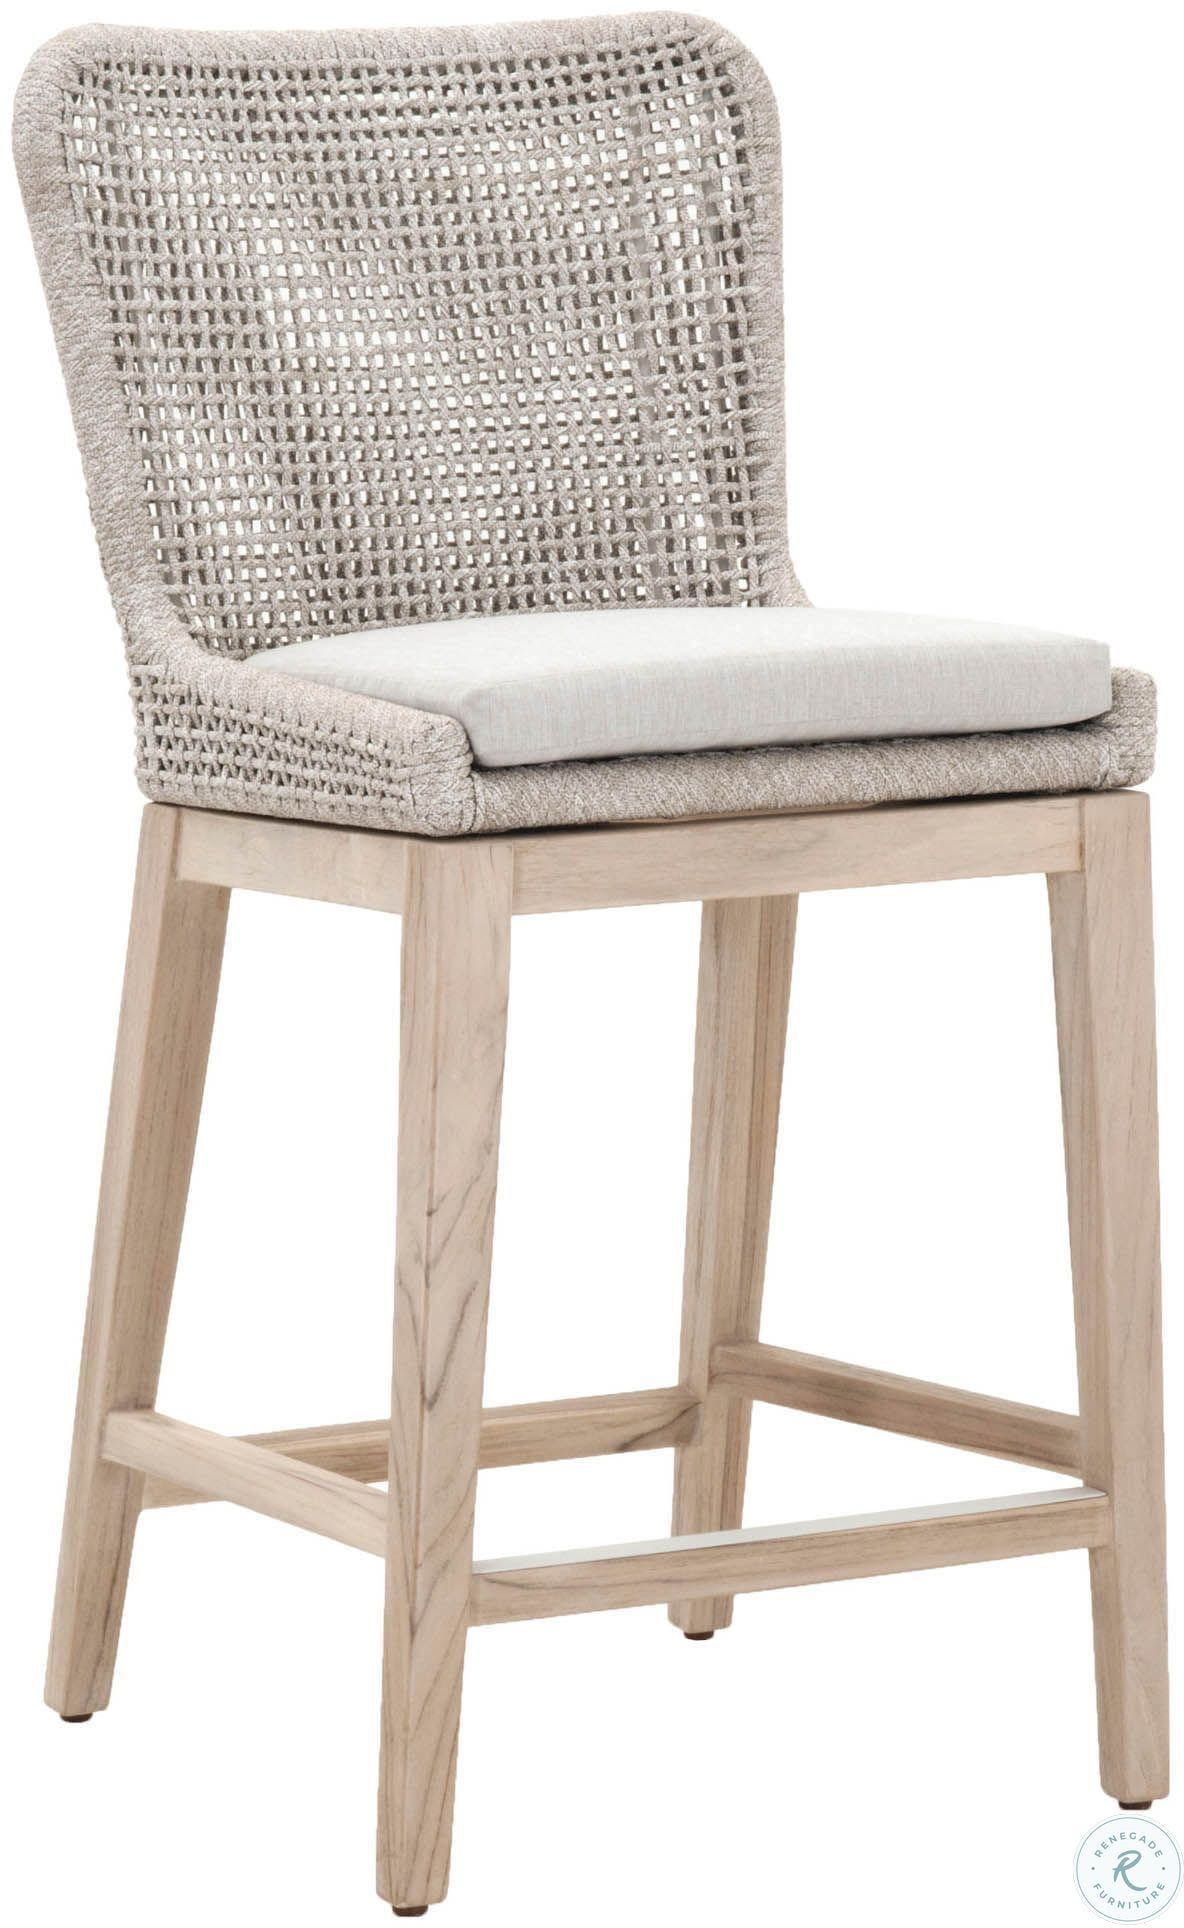 Woven Gray Mesh Outdoor Dining Chair Set Of 2 In 2021 Counter Stools Wicker Bar Stools Rattan Counter Stools